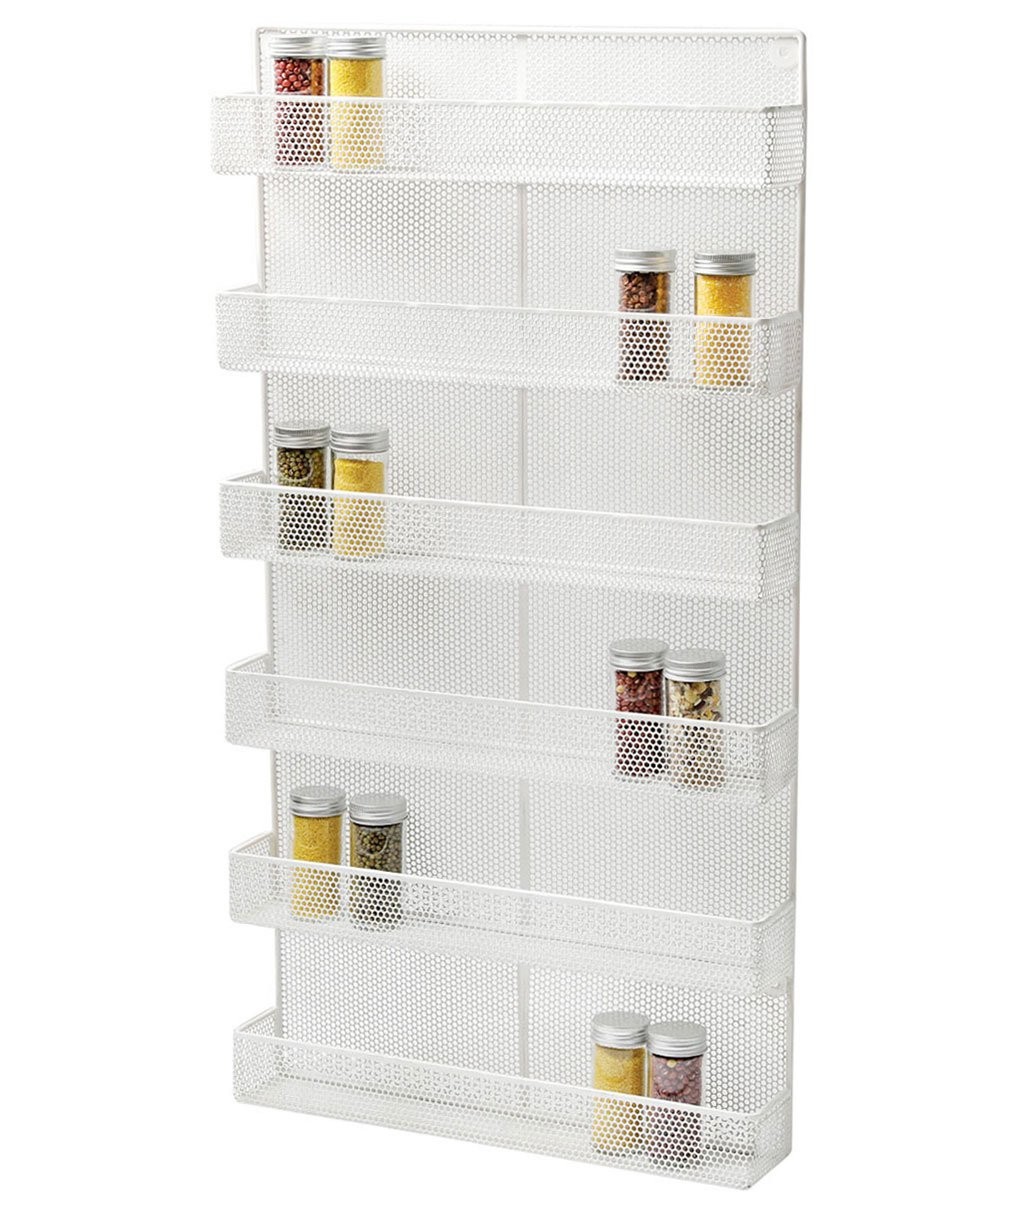 TQVAI 6 Tier Wall Mounted Spice Rack Organizer - Made of Sturdy Punching Net, White by TQVAI